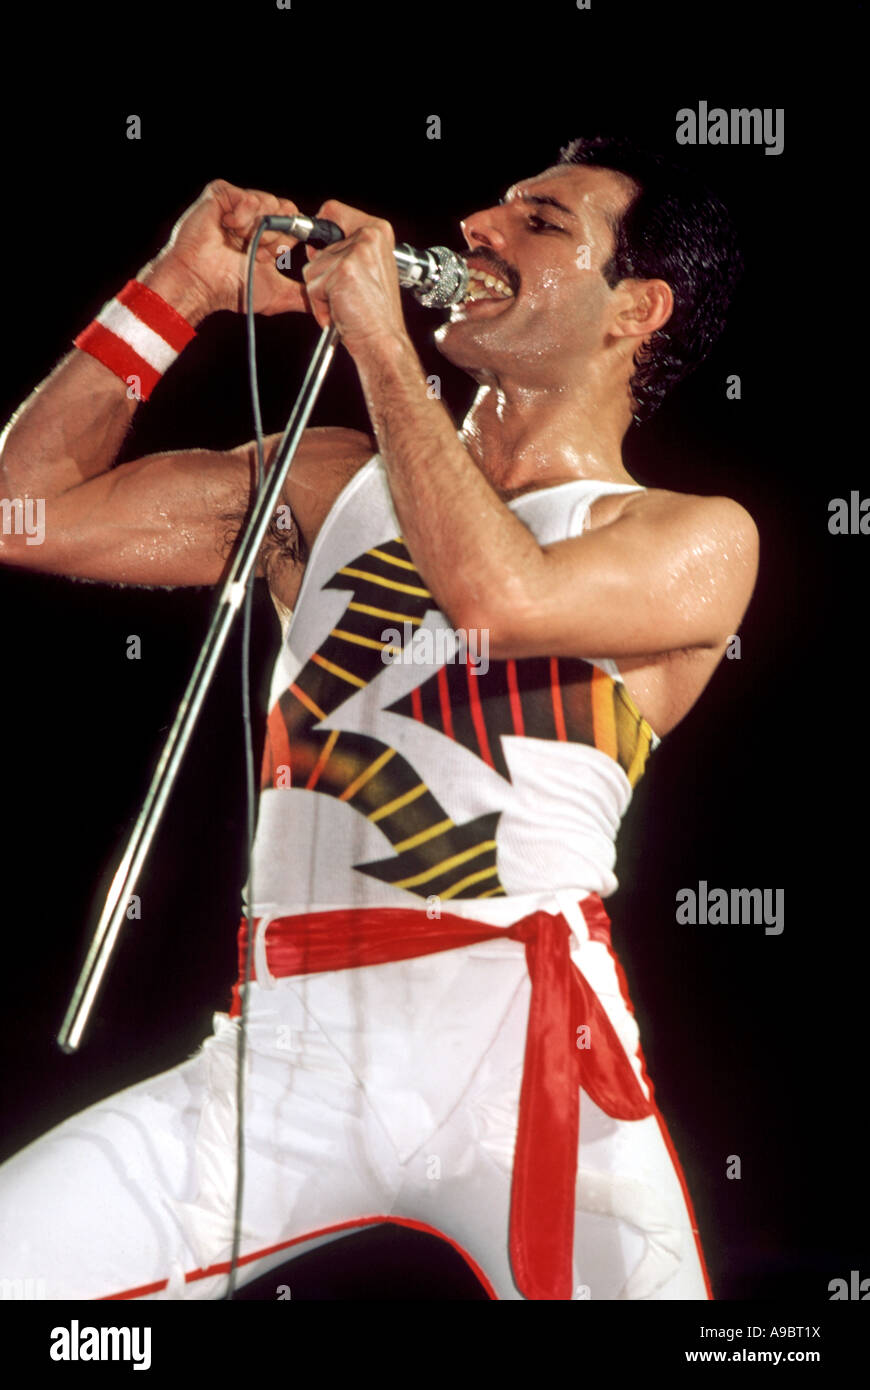 Freddie Mercury High Resolution Stock Photography And Images Alamy